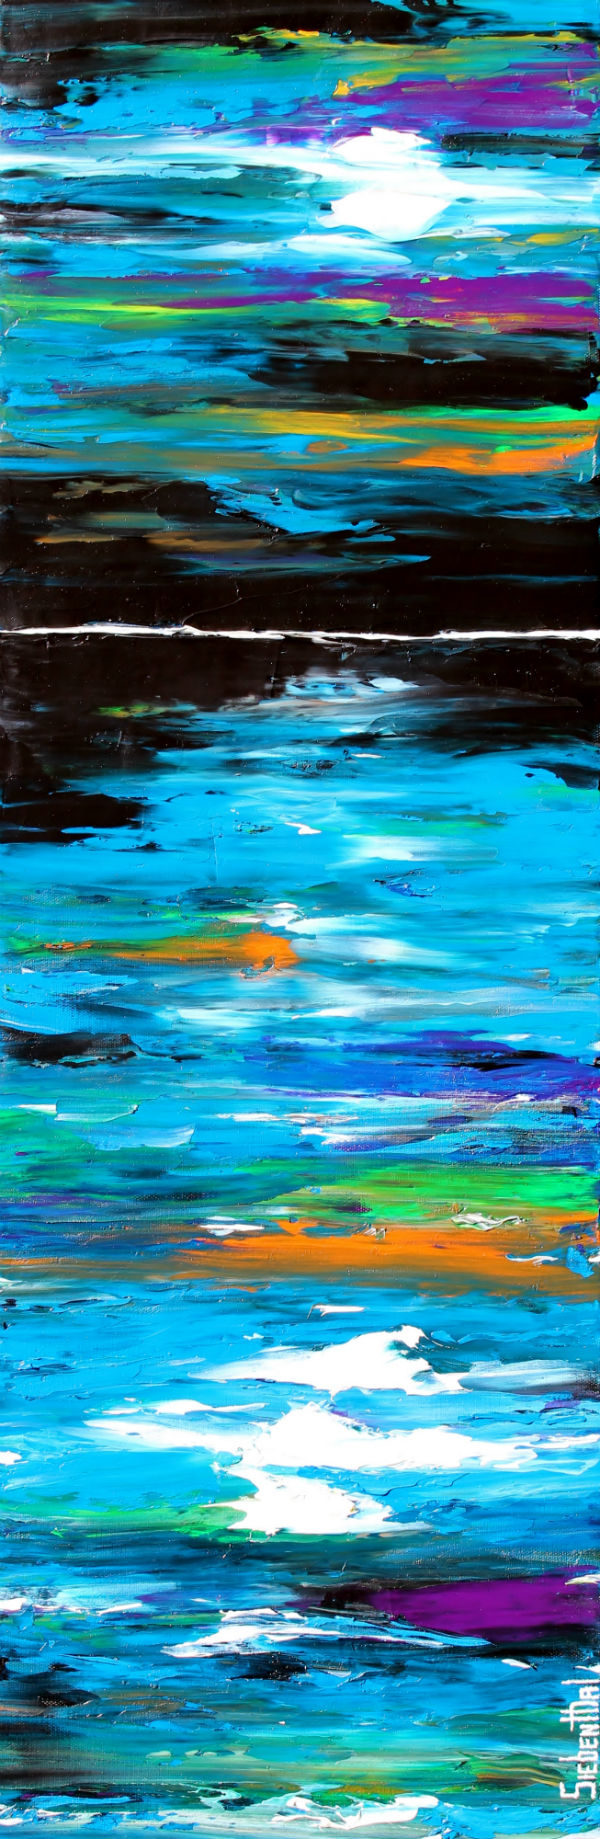 Night Shade - Oil Painting - Palette Knife by Eric Siebenthal